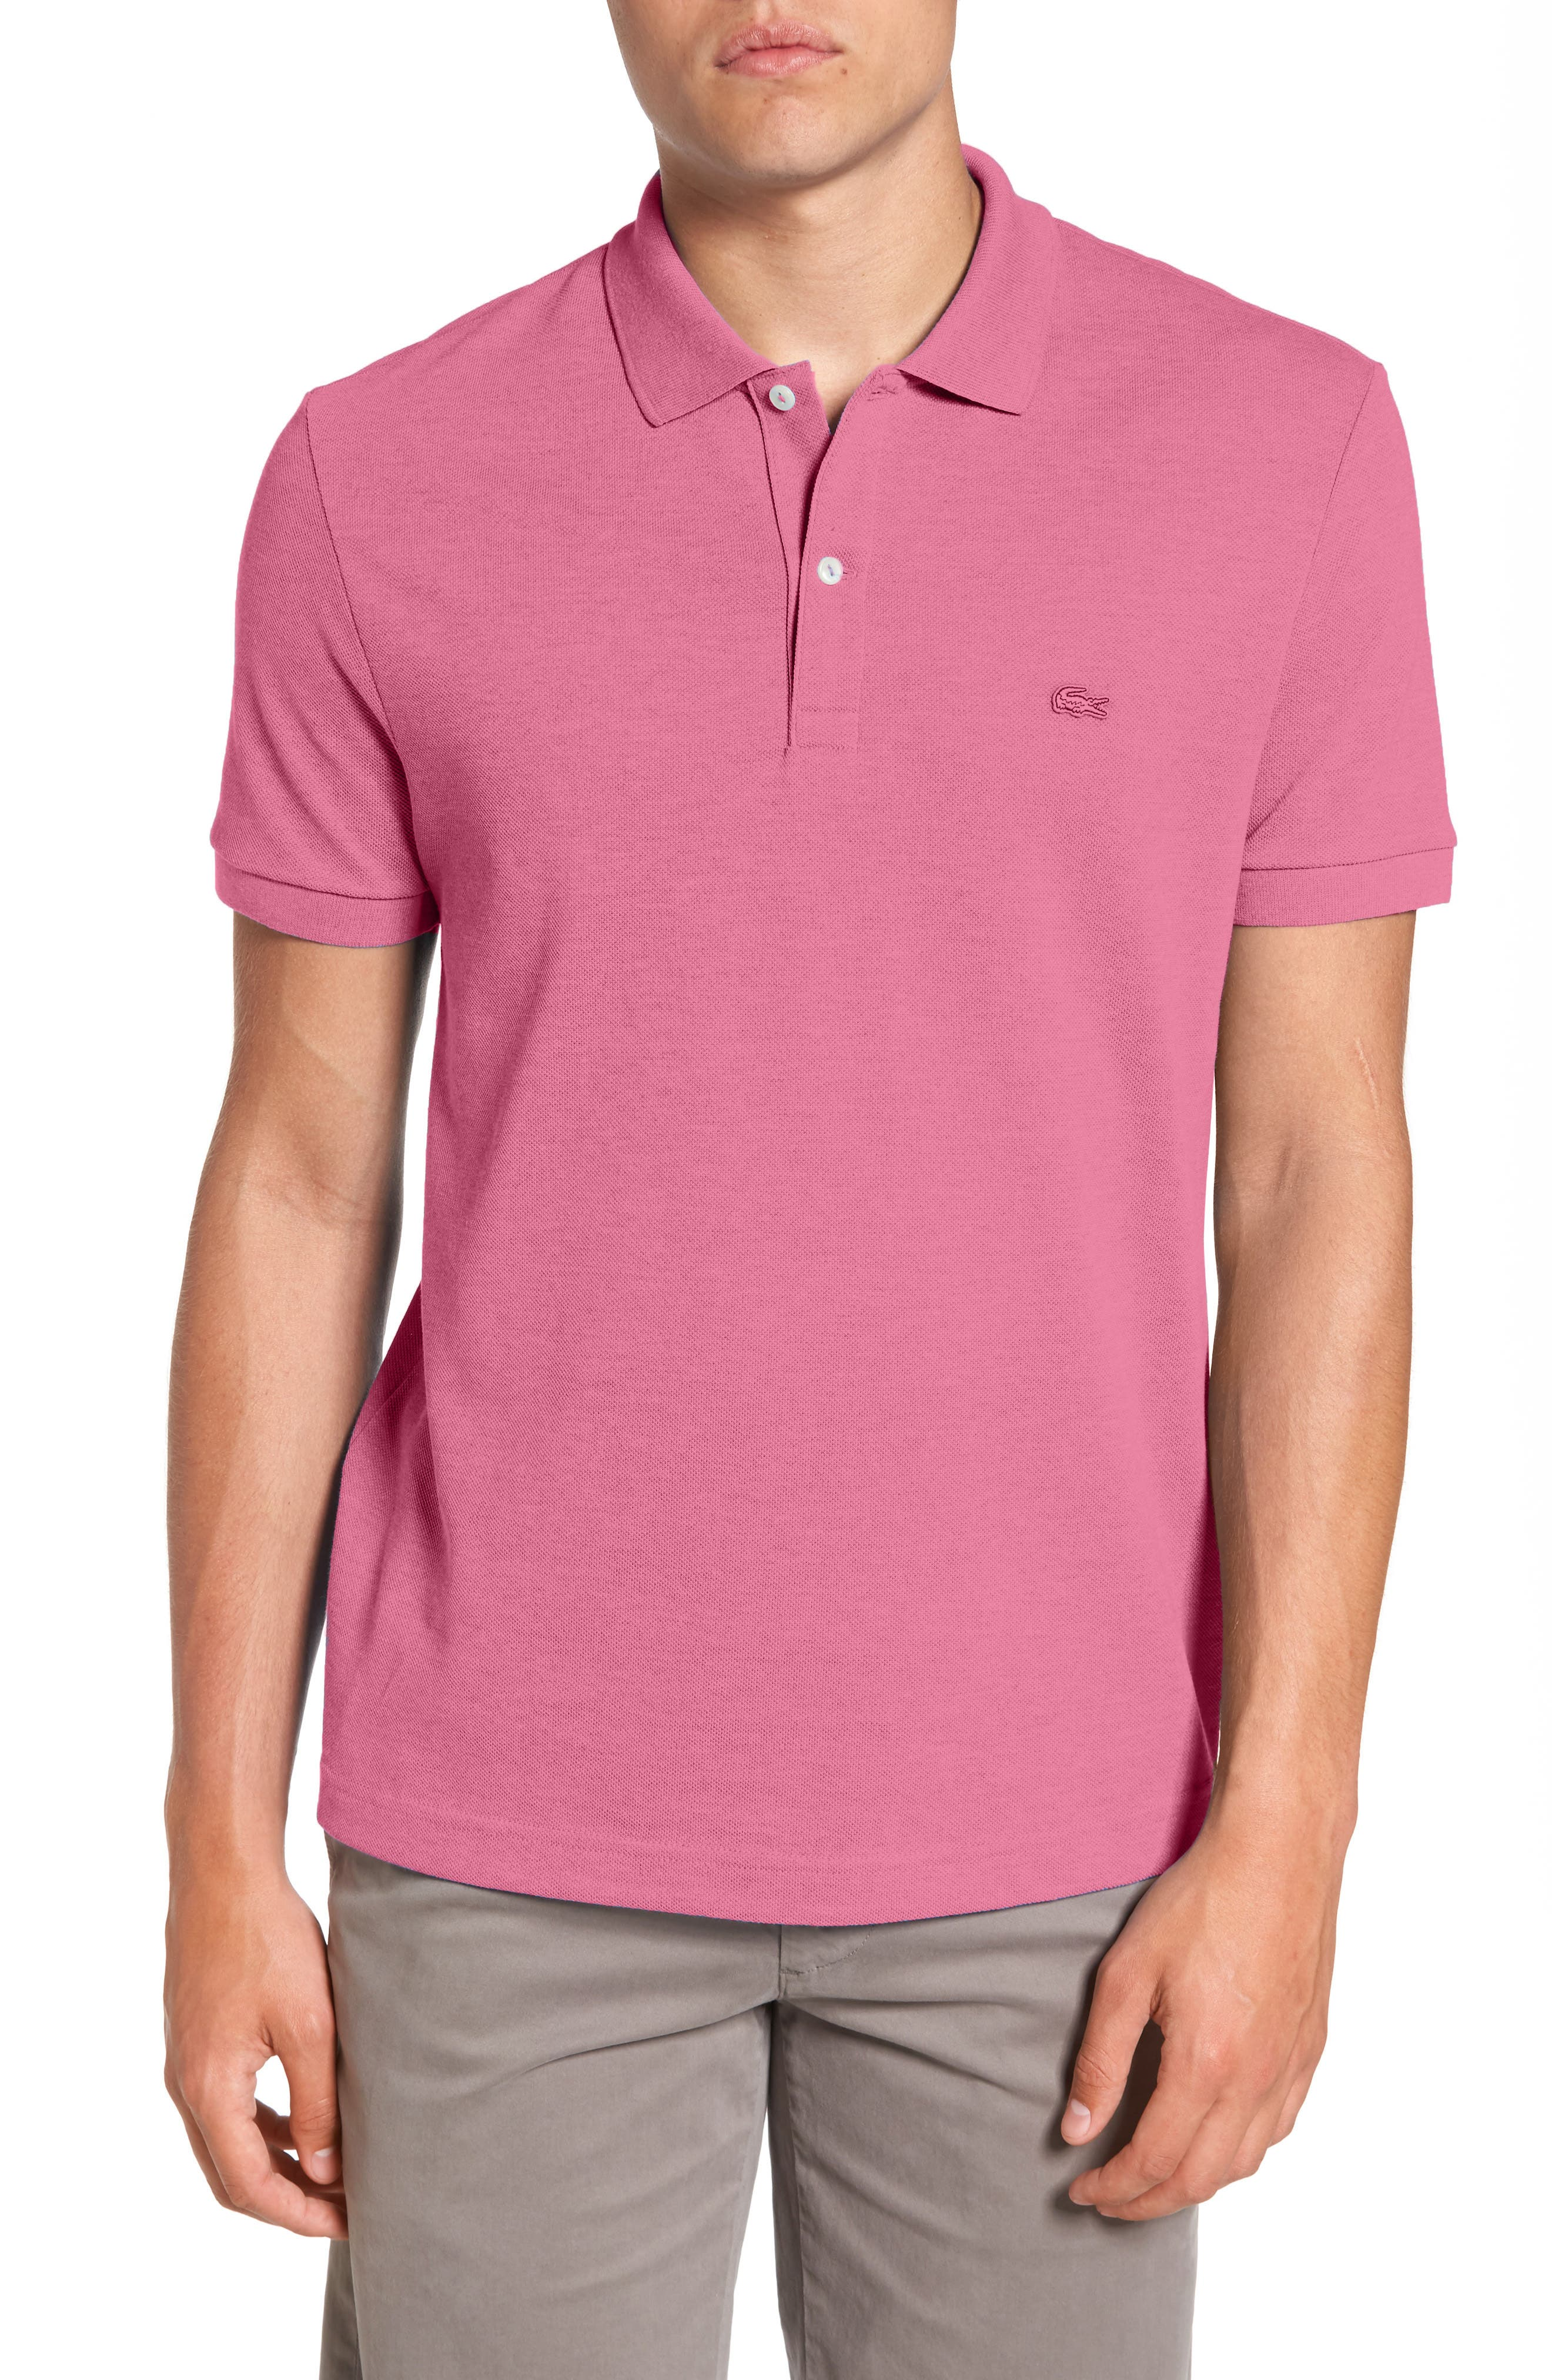 Lacoste Piqué Polo with Tonal Croc